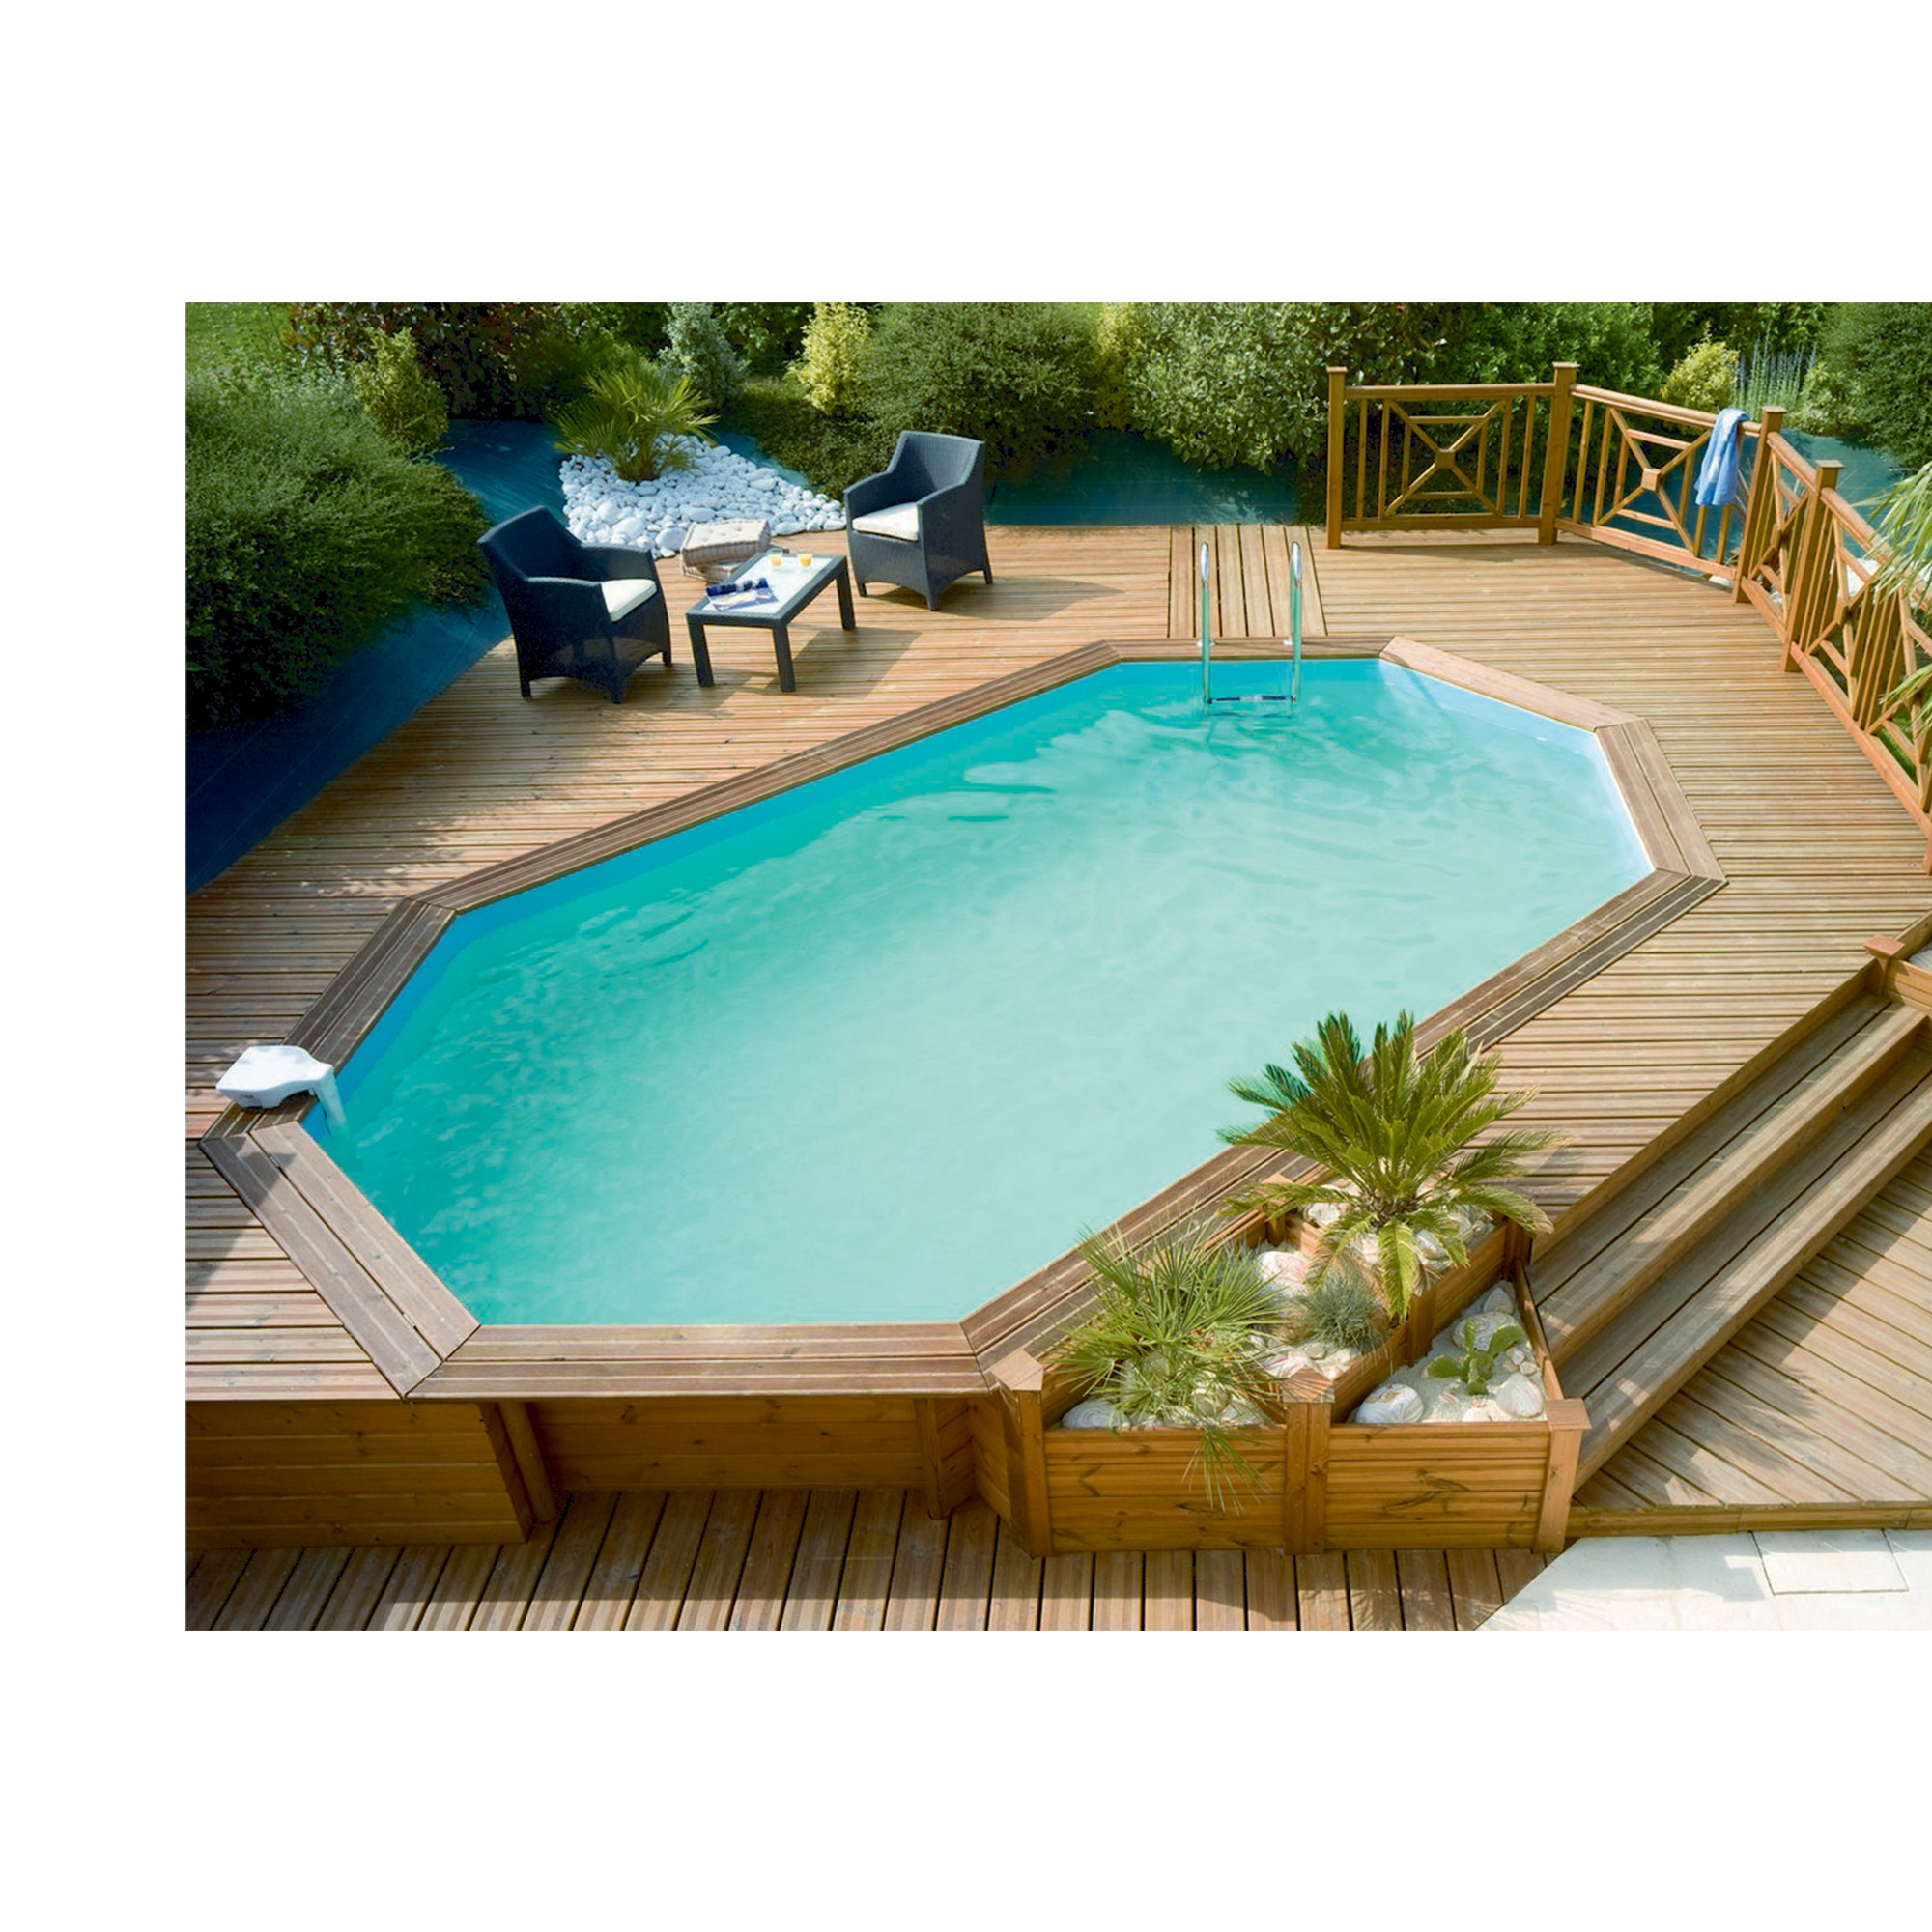 Piscine bois octogonale allong e hors sol semi enterr e for Piscine hors sol bois octogonale